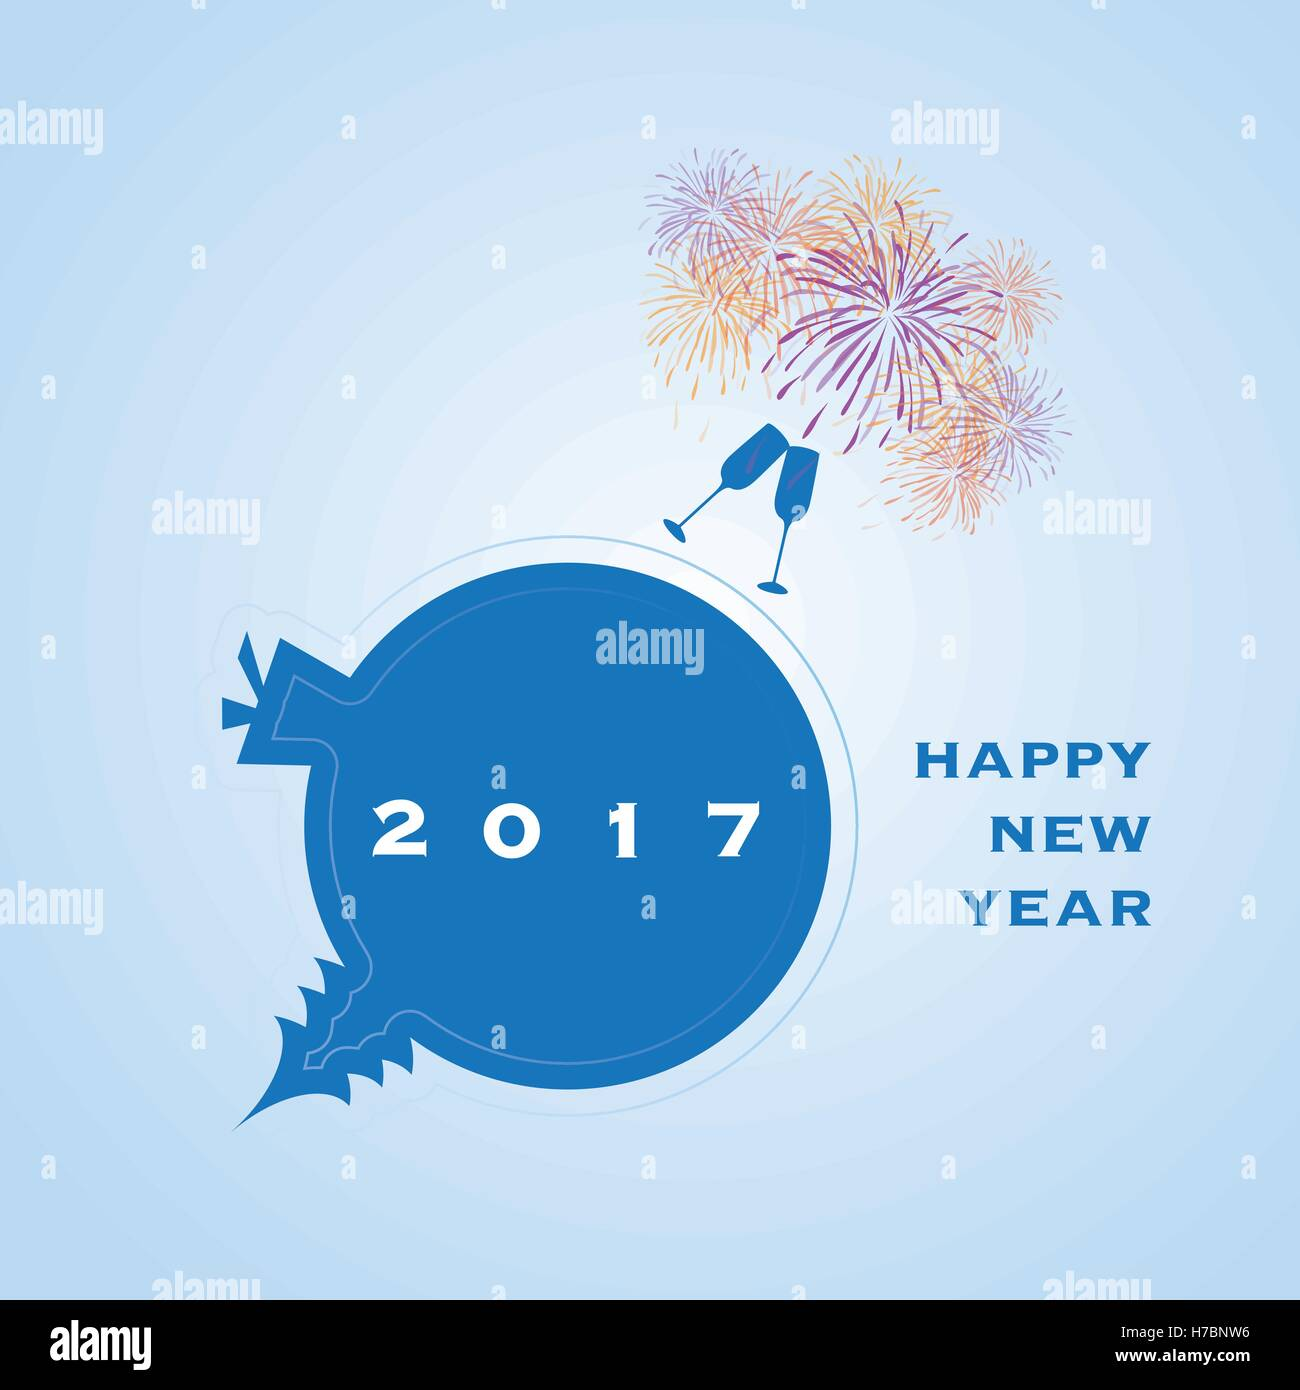 Best Wishes Colorful Abstract Modern Style Happy New Year Greeting